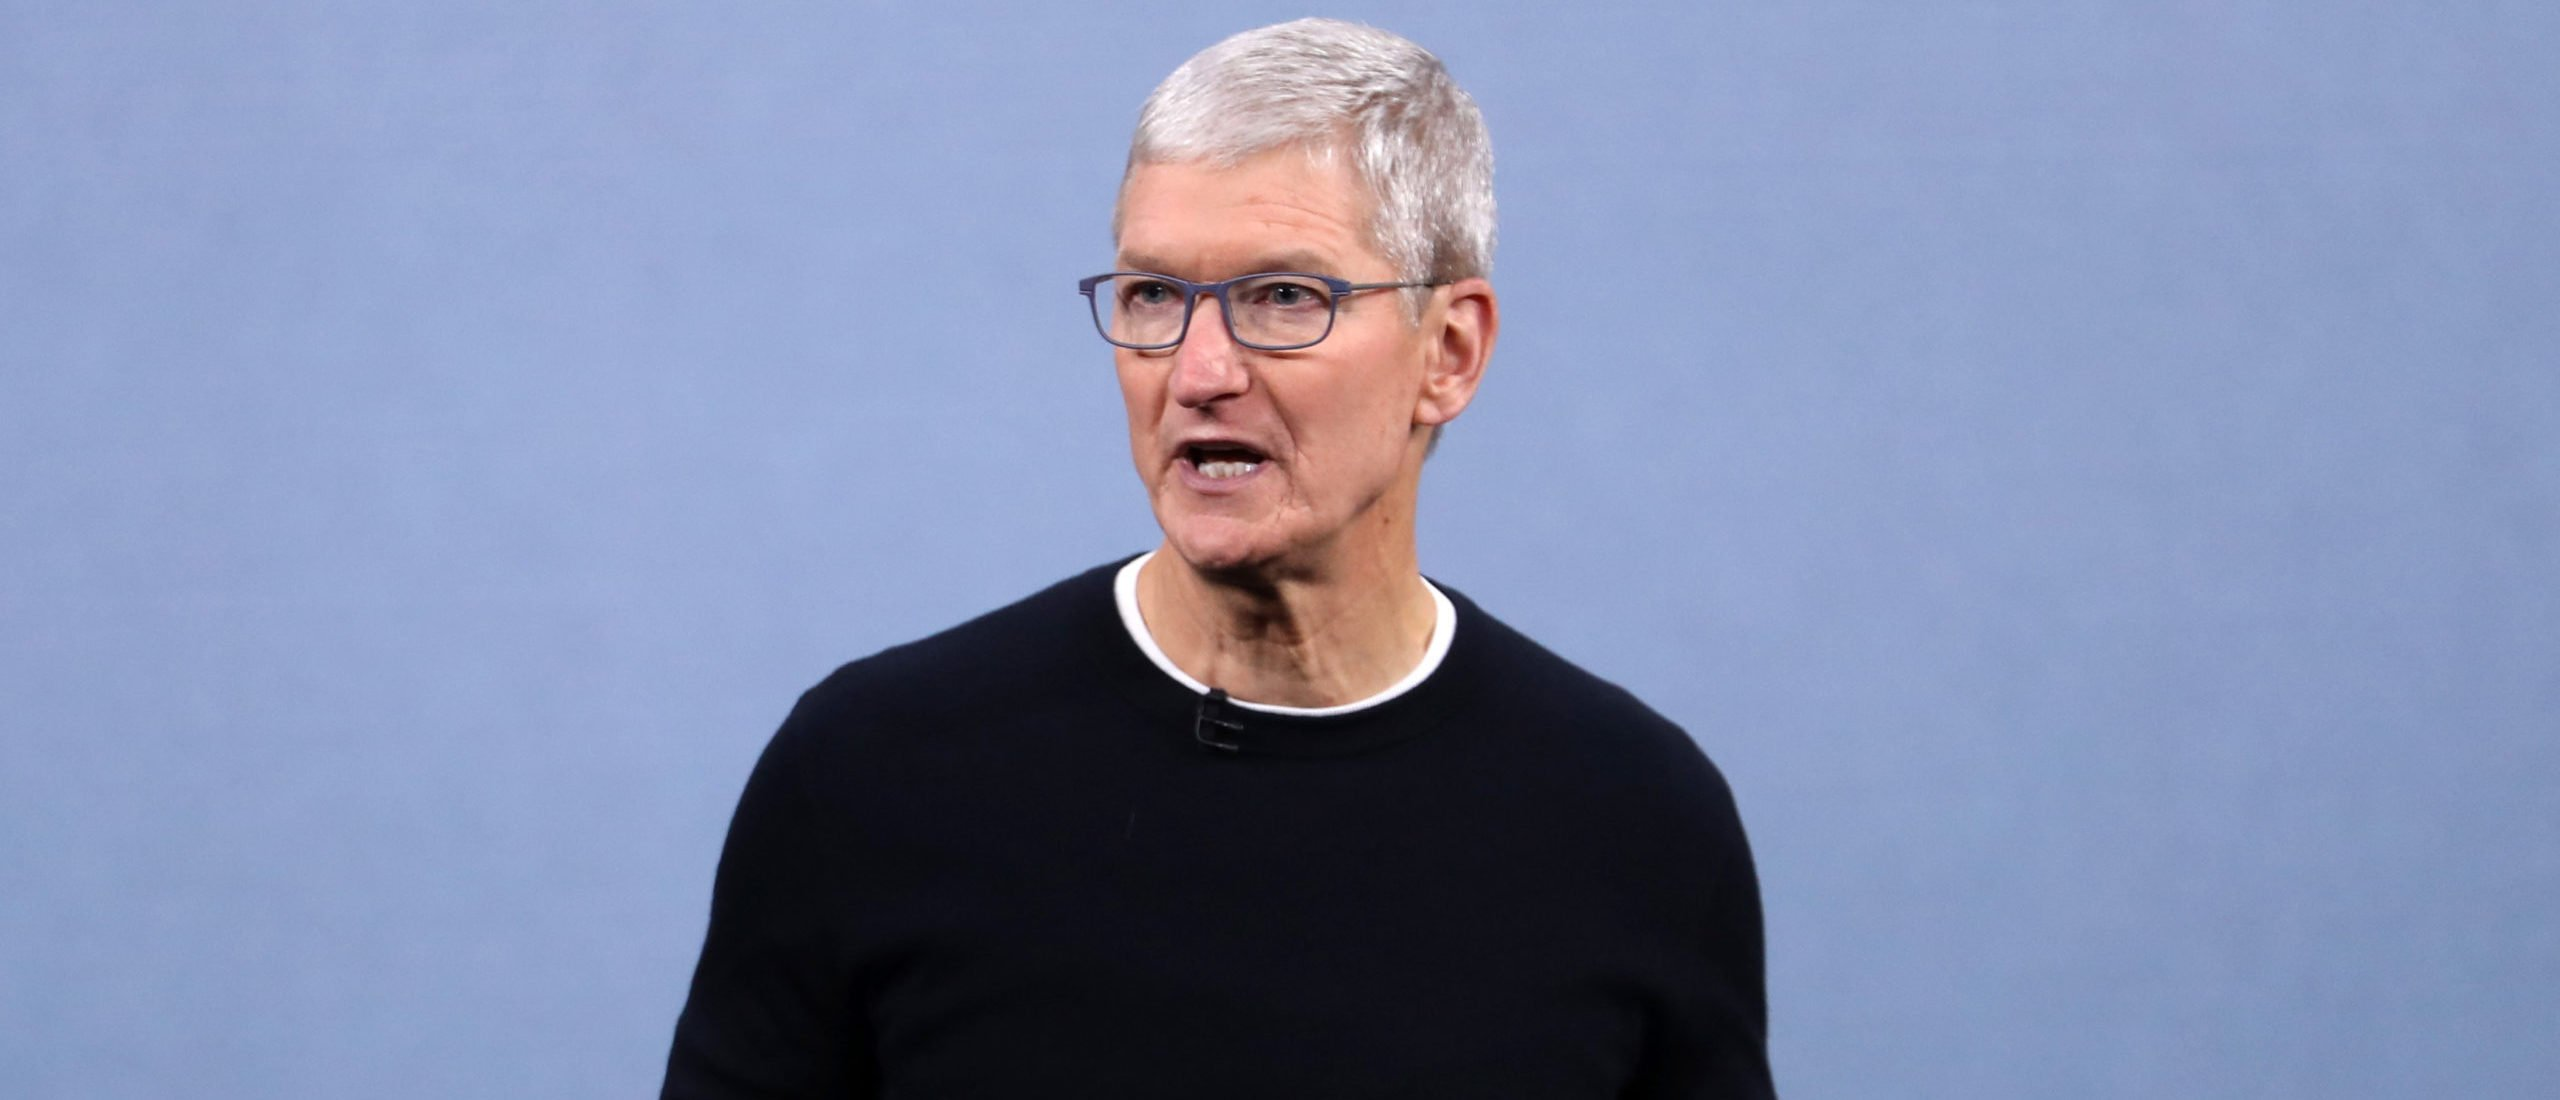 You are currently viewing Apple CEO Blasts Georgia Voting Law, But Has Stayed Silent On Chinese Repression